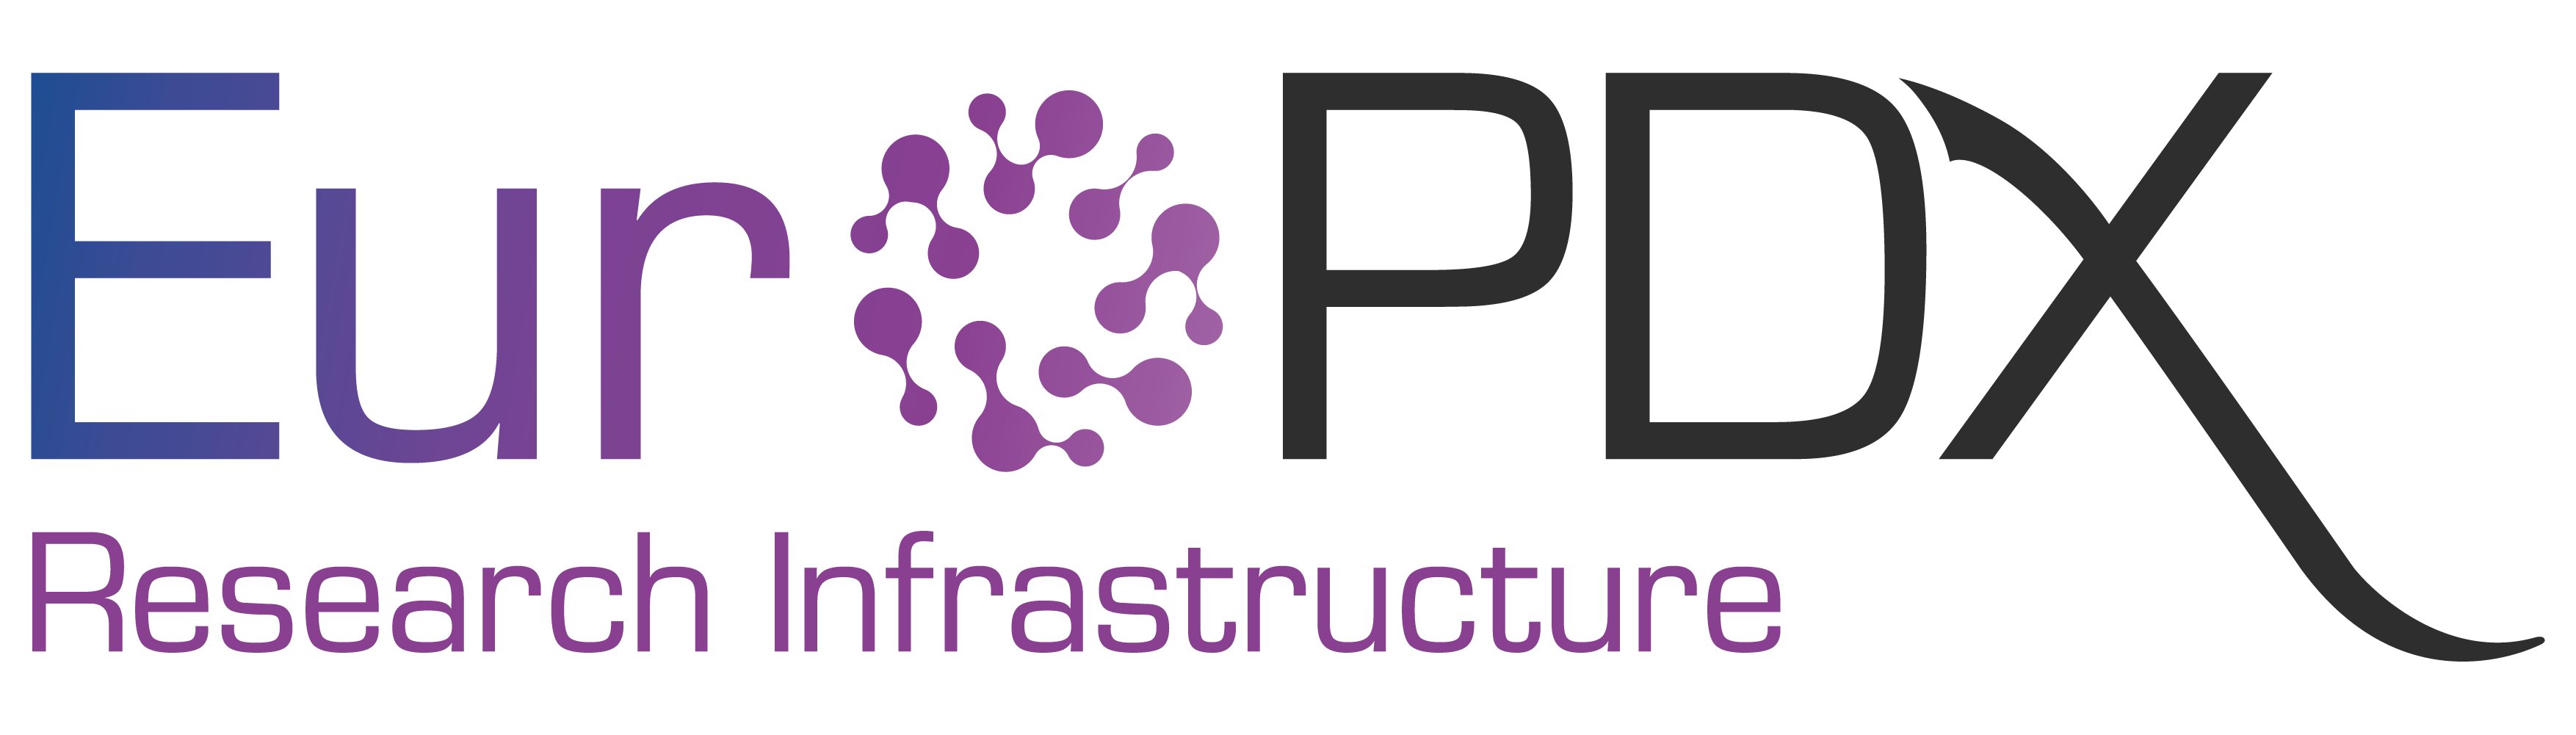 EurOPDX Research Infrastructure Logo